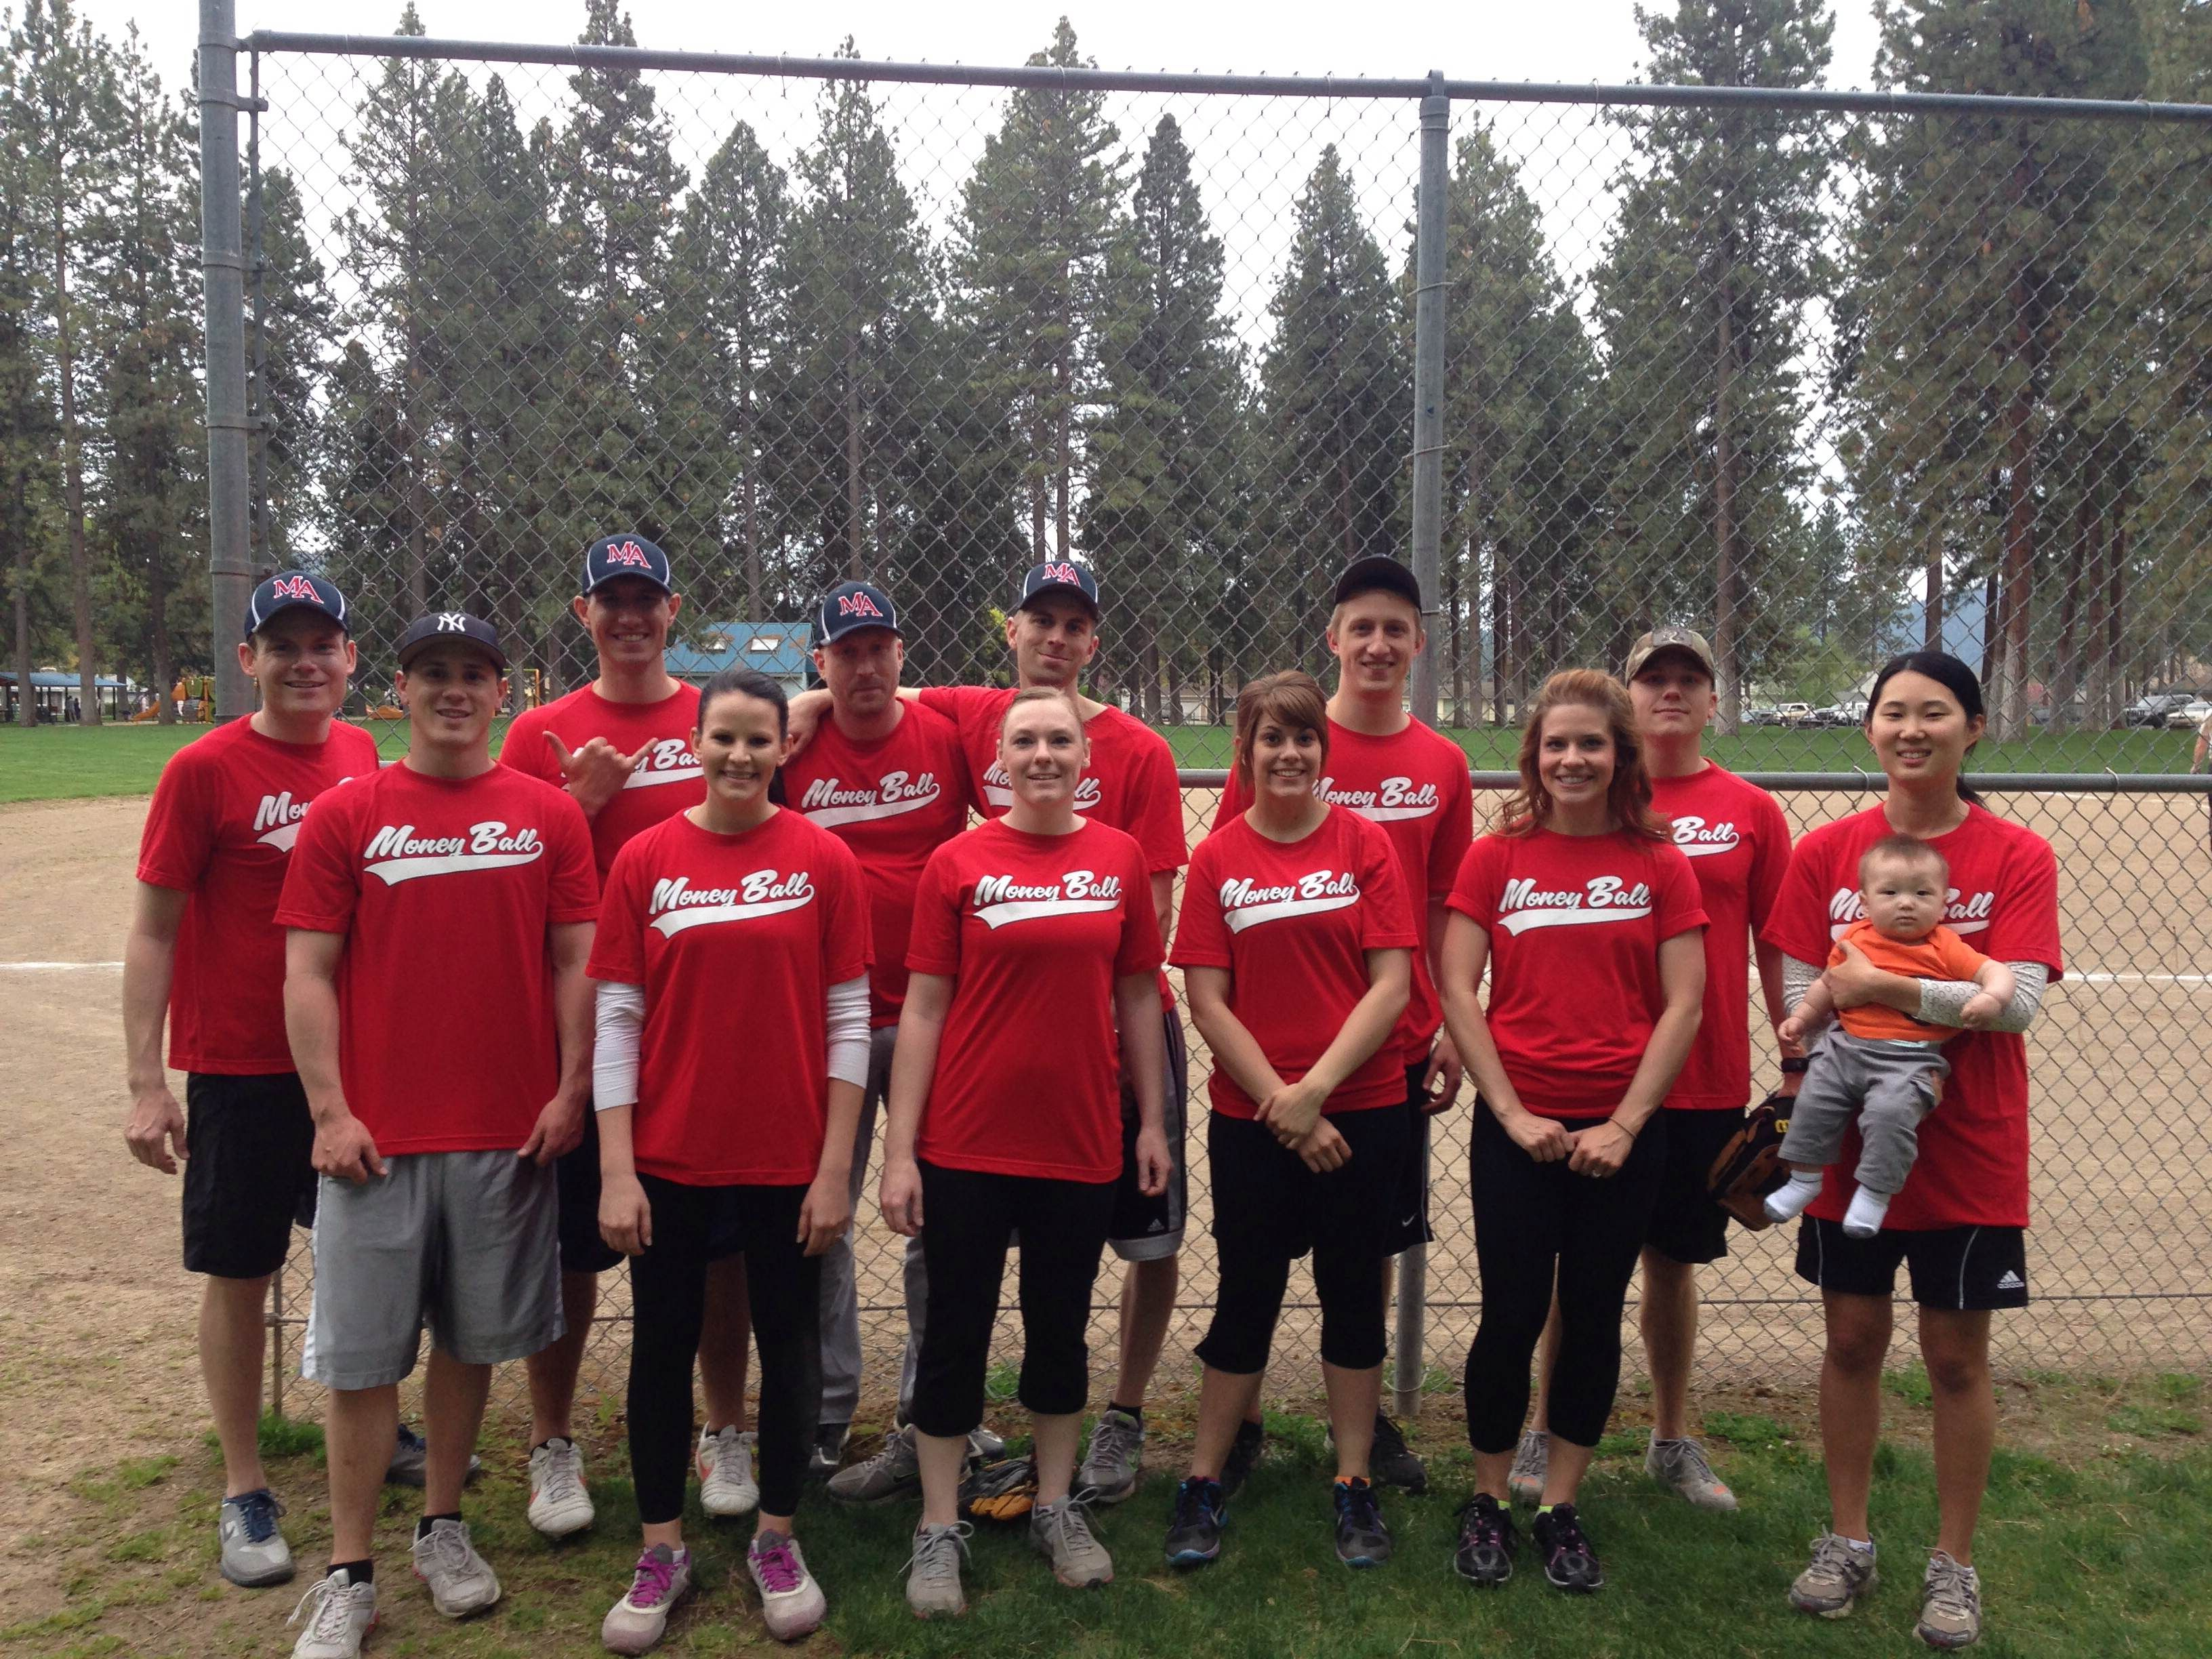 Moss Adams Spokane has fun playing softball together!